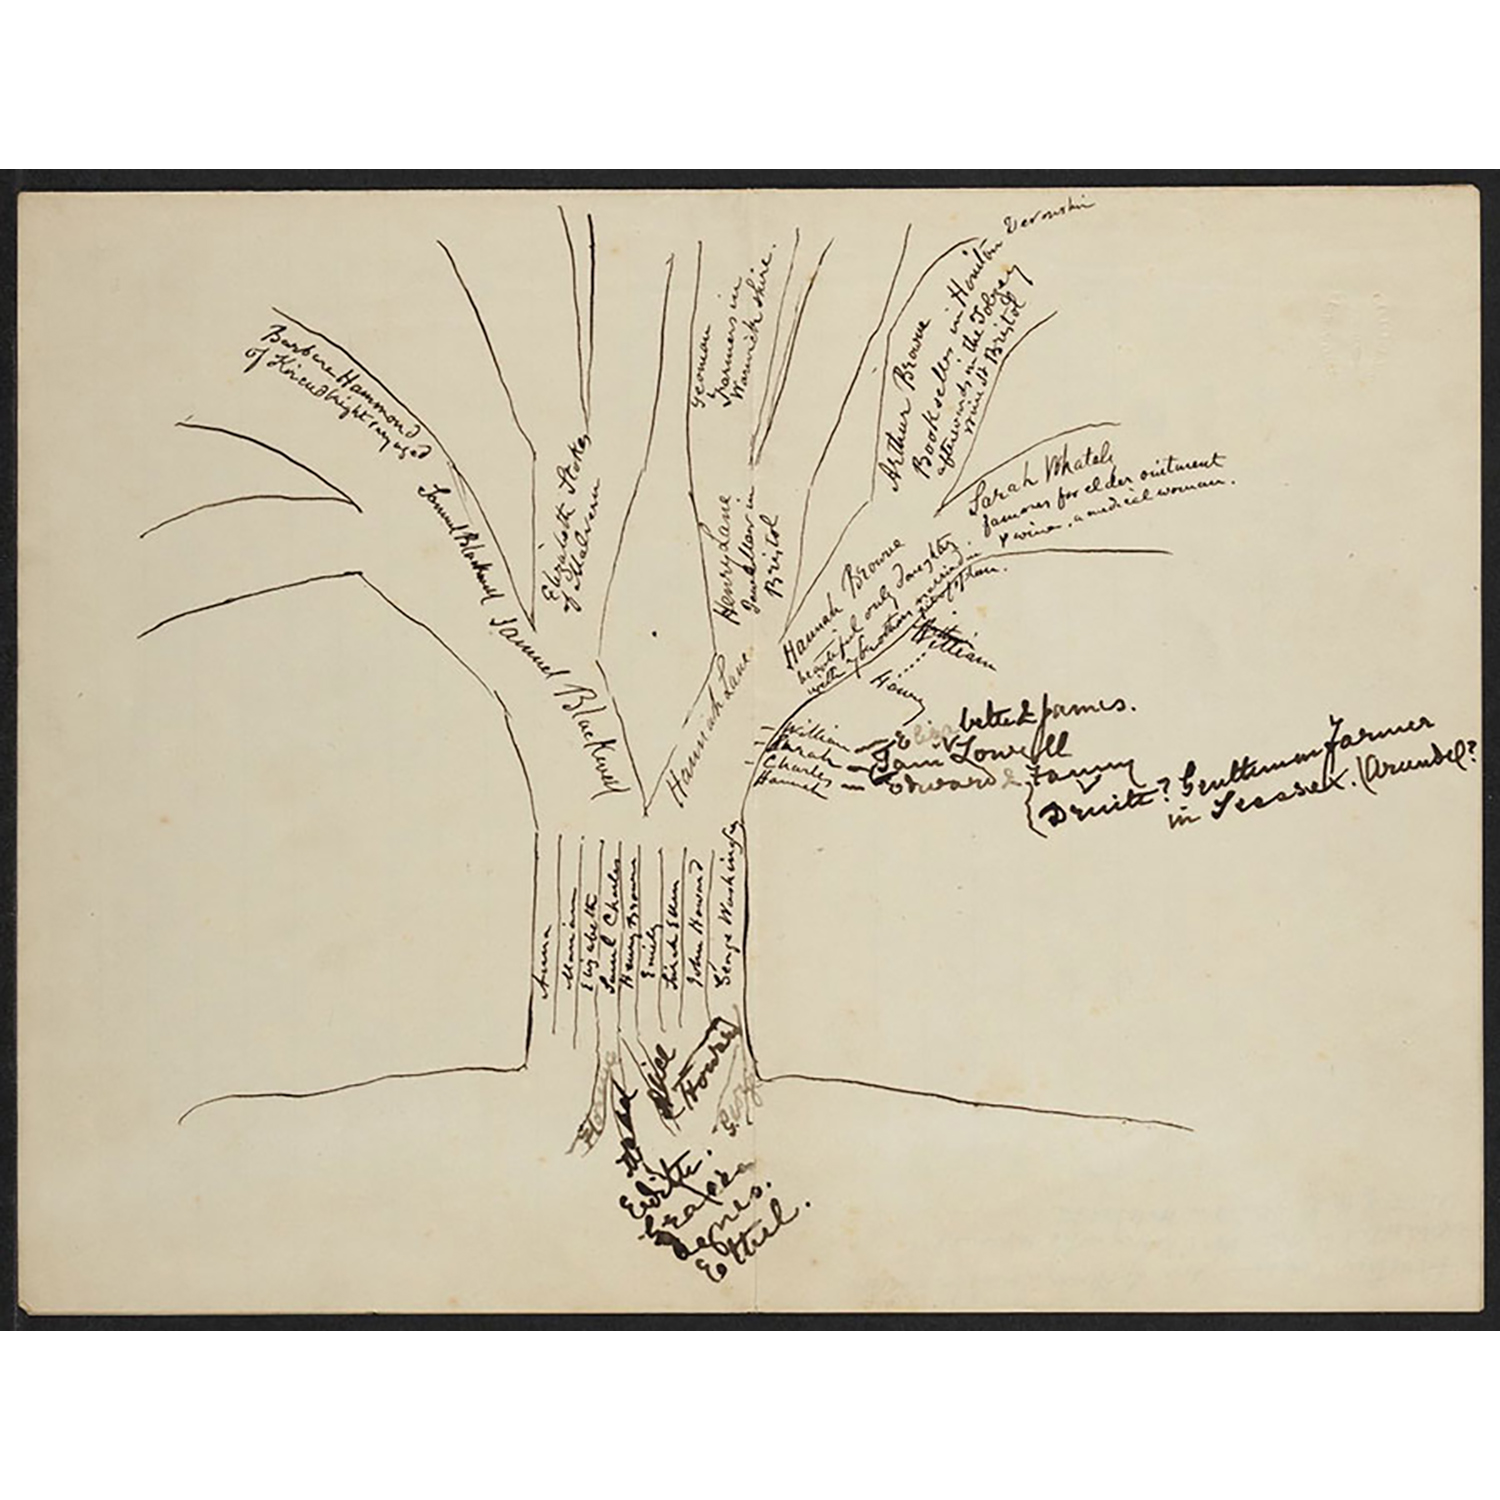 hand-drawn-picture-of-blackwell-family-tree_courtesy-of-schlesinger-library_900px.jpg